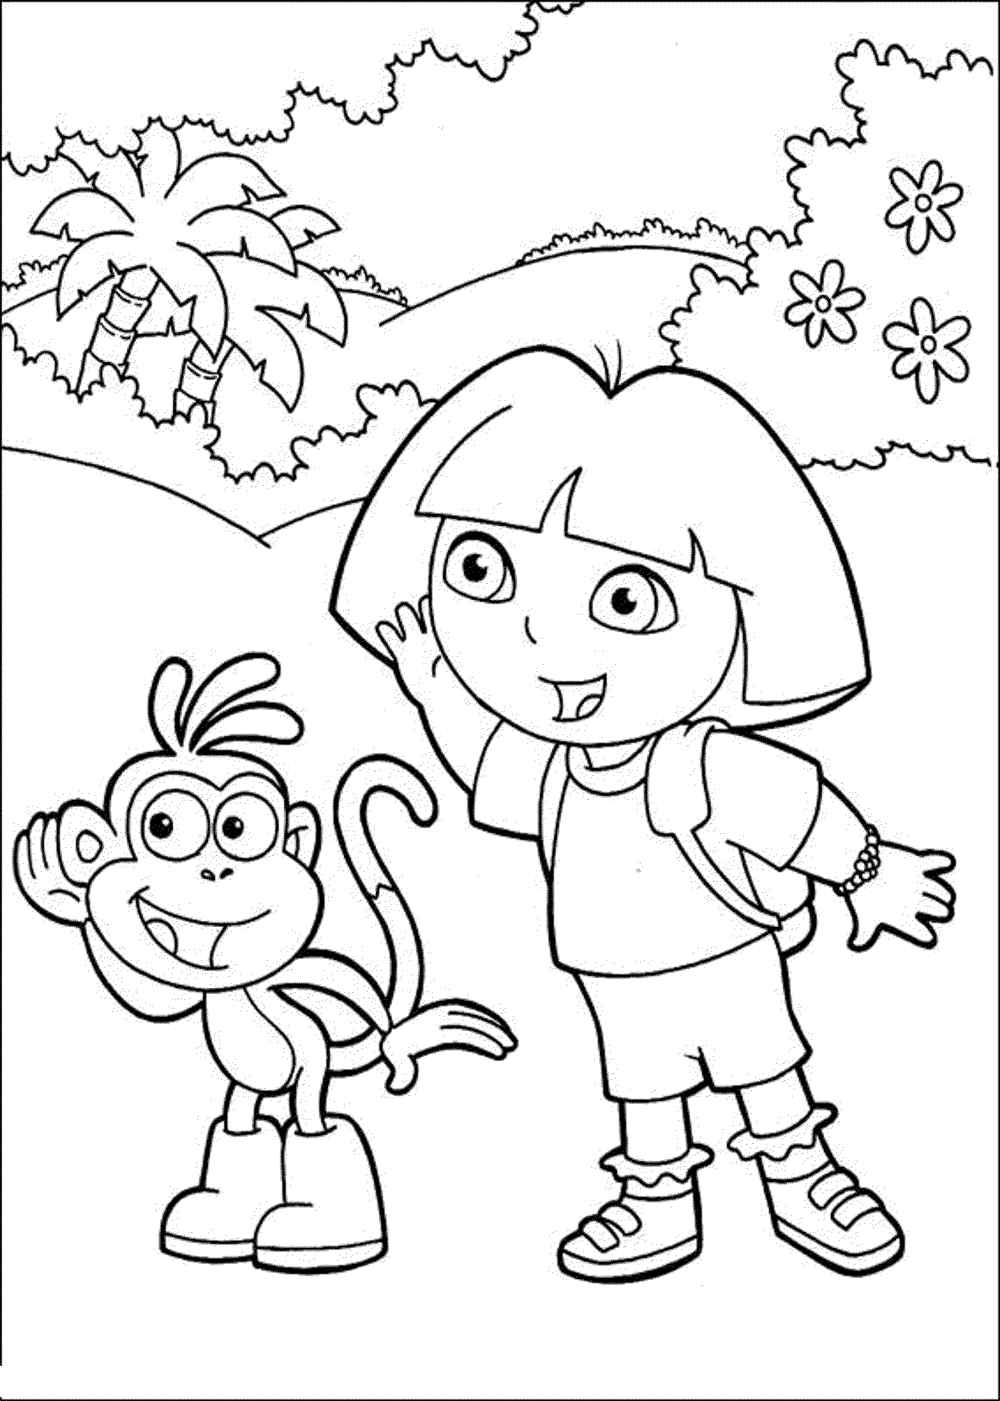 Dora the explorer coloring pages cartoon for Dora the explorer coloring page